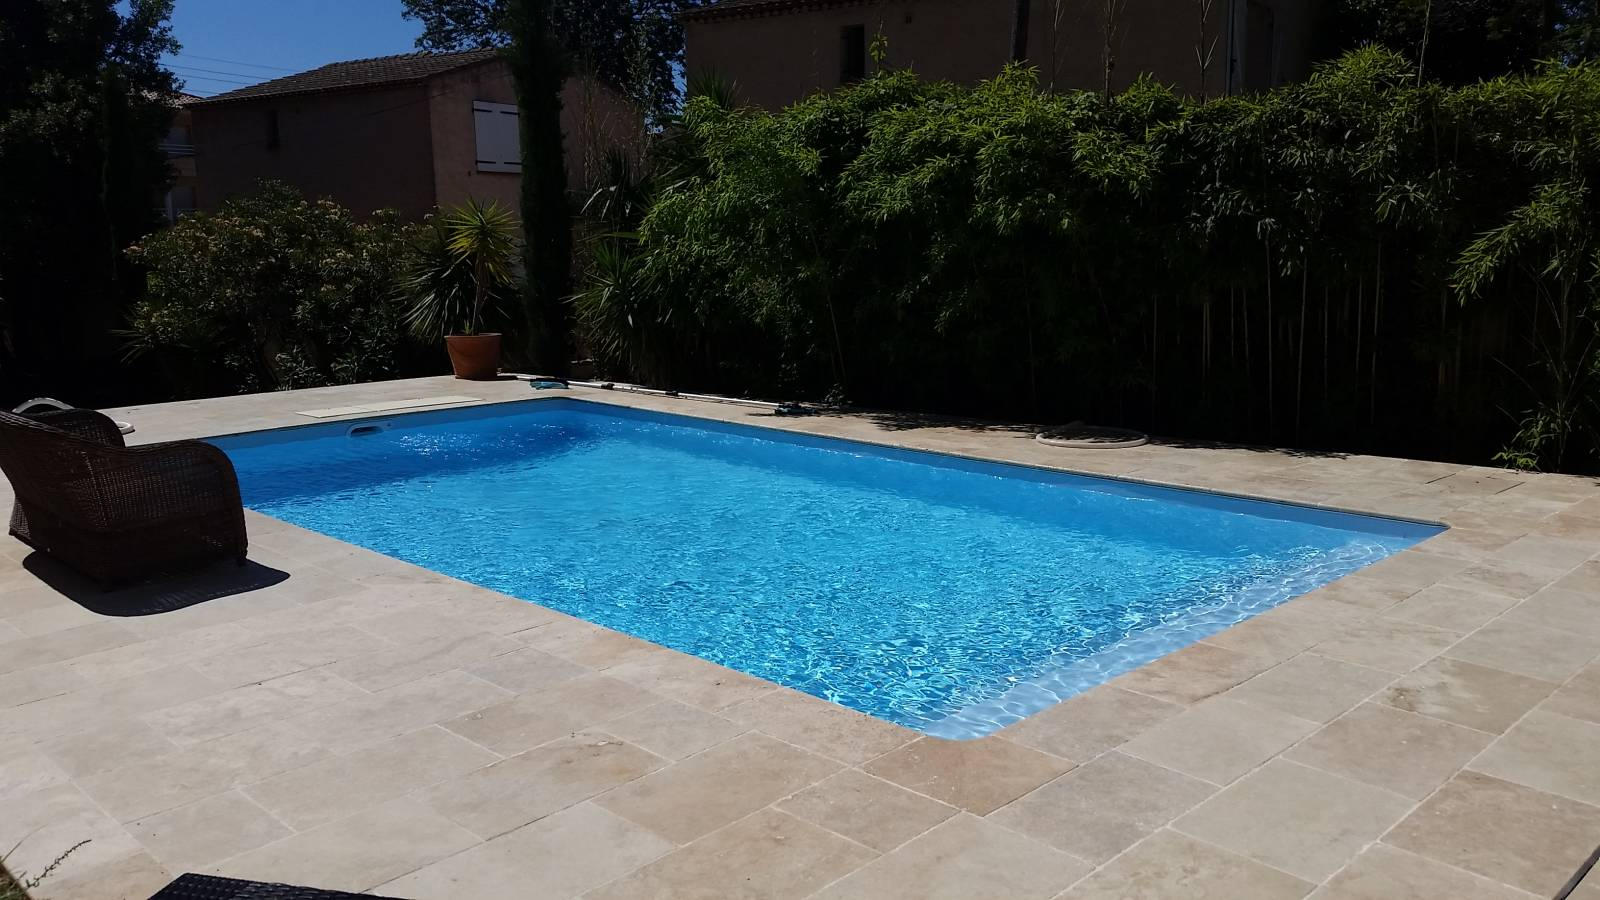 Piscine 8x4m sur toulon r alis par desjoyaux six fours for Piscine six fours